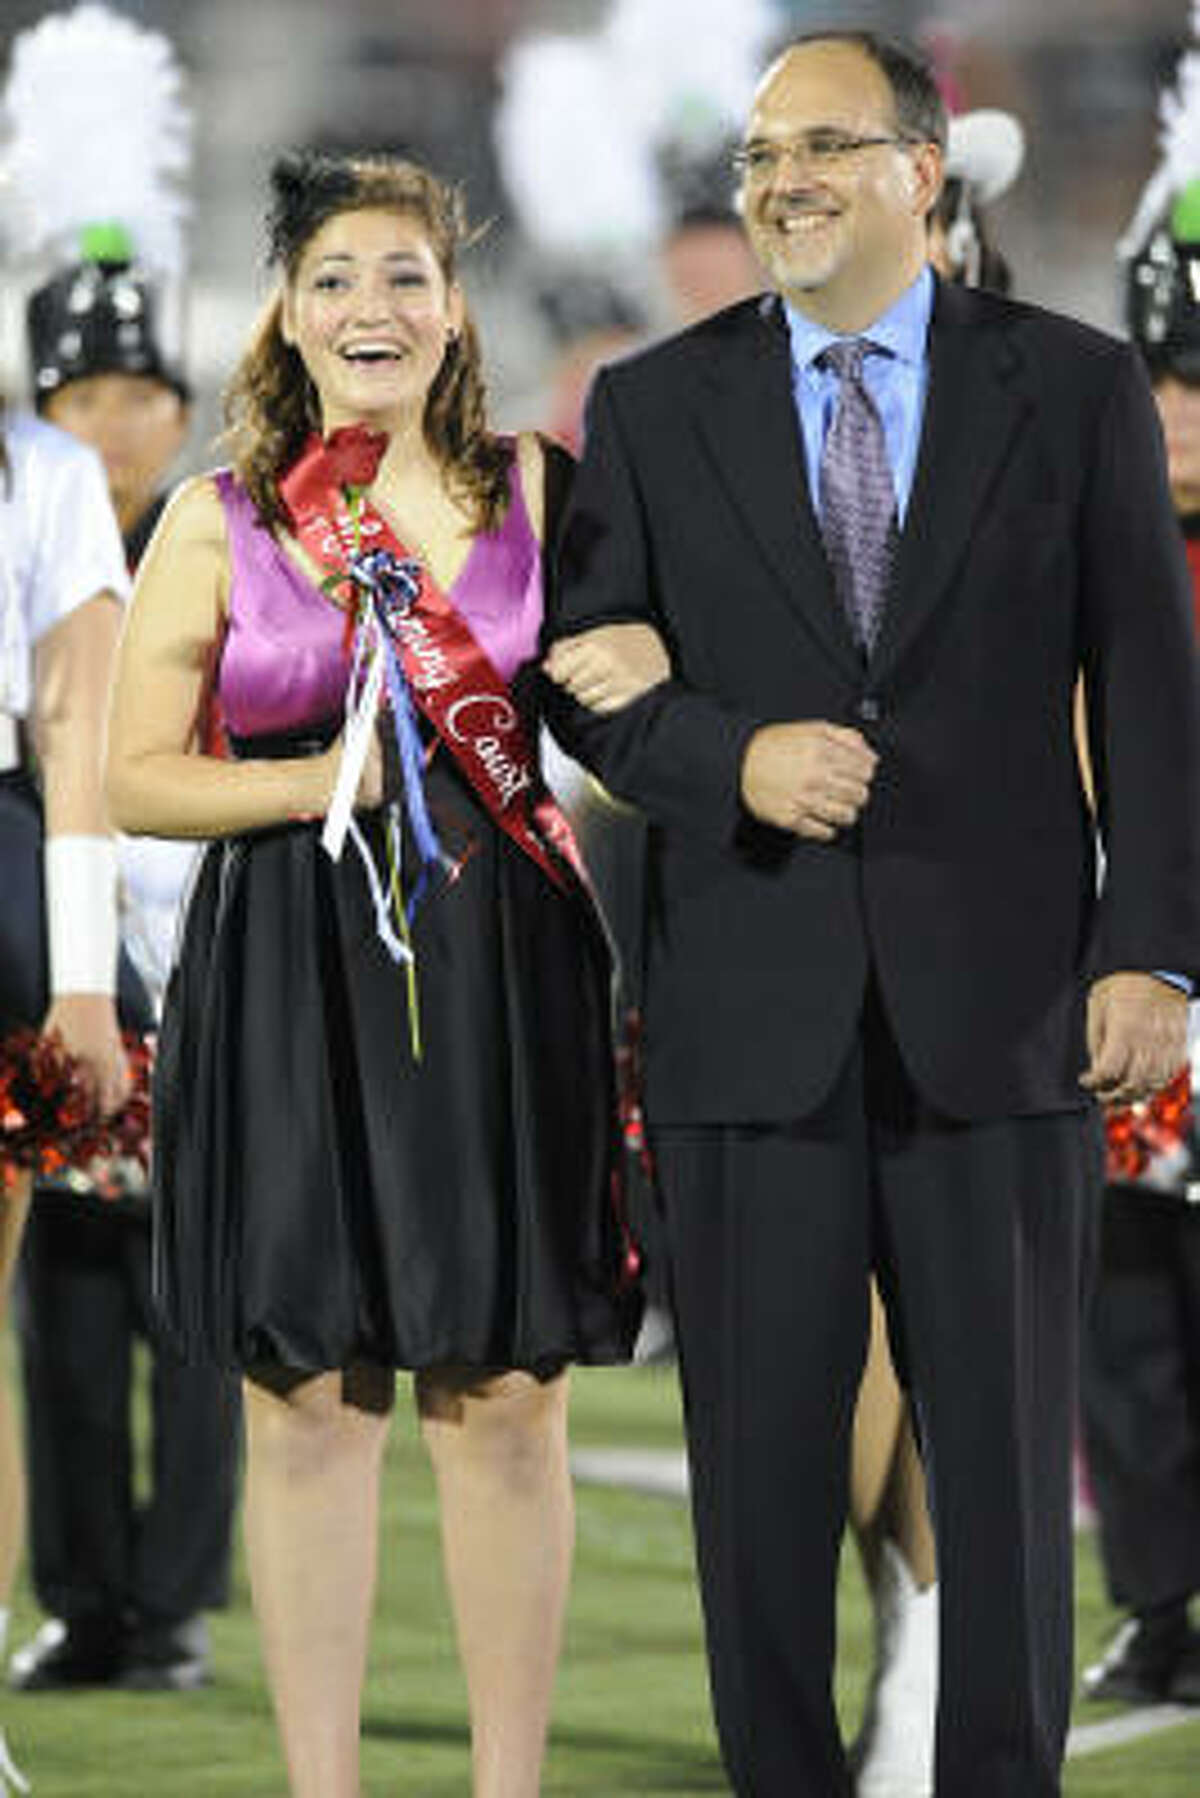 Jennifer Potter reacts to being named Dawson Homecoming Queen. Jennifer was escorted by her dad Richard Potter.